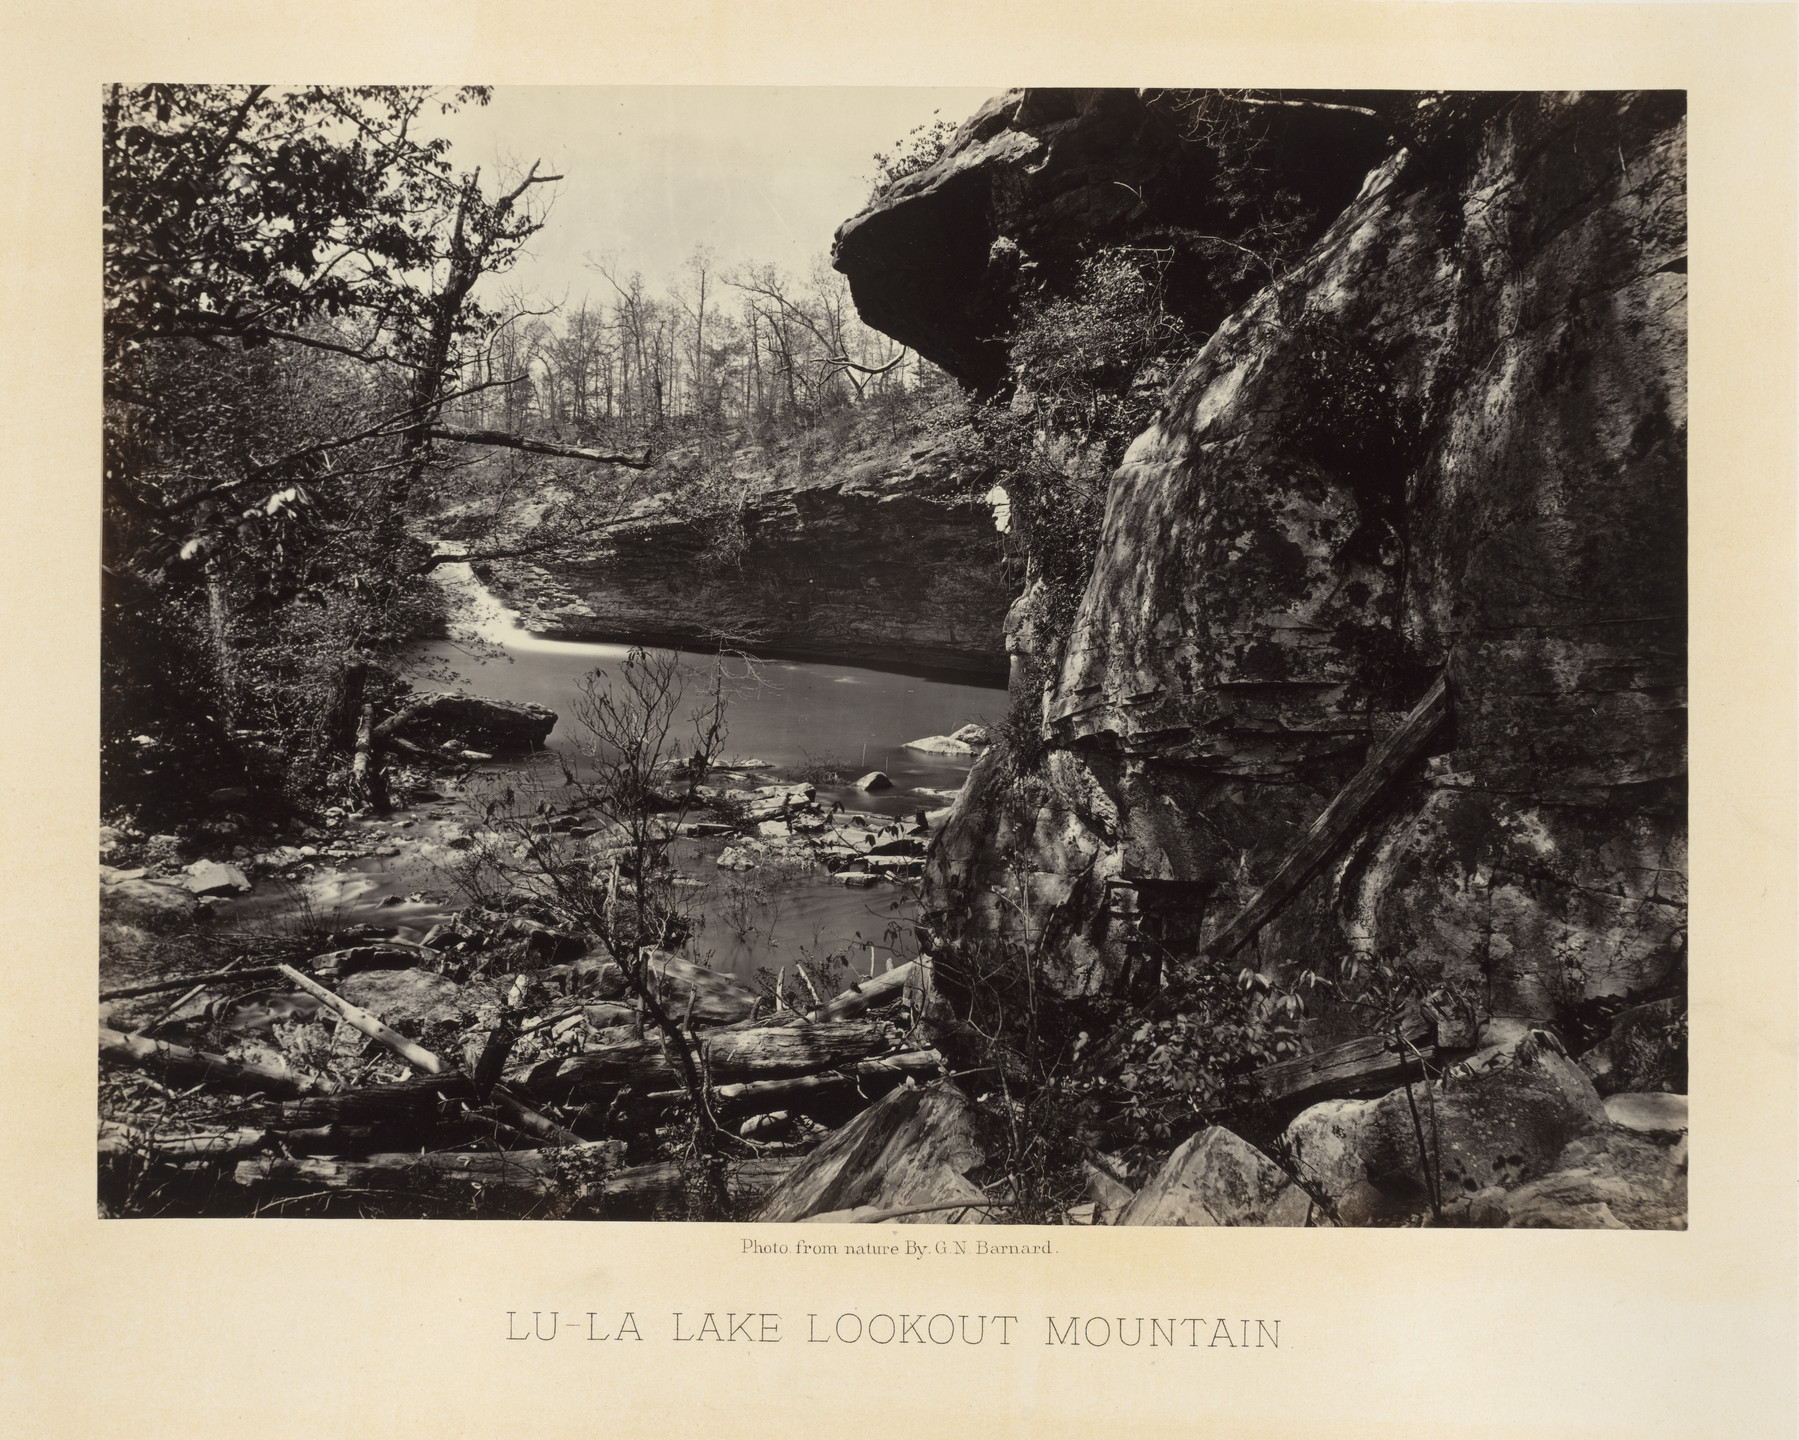 George Barnard. Lu-La-Lake, Lookout Mountain from the album Photographic Views of Sherman's Campaign. 1864-65